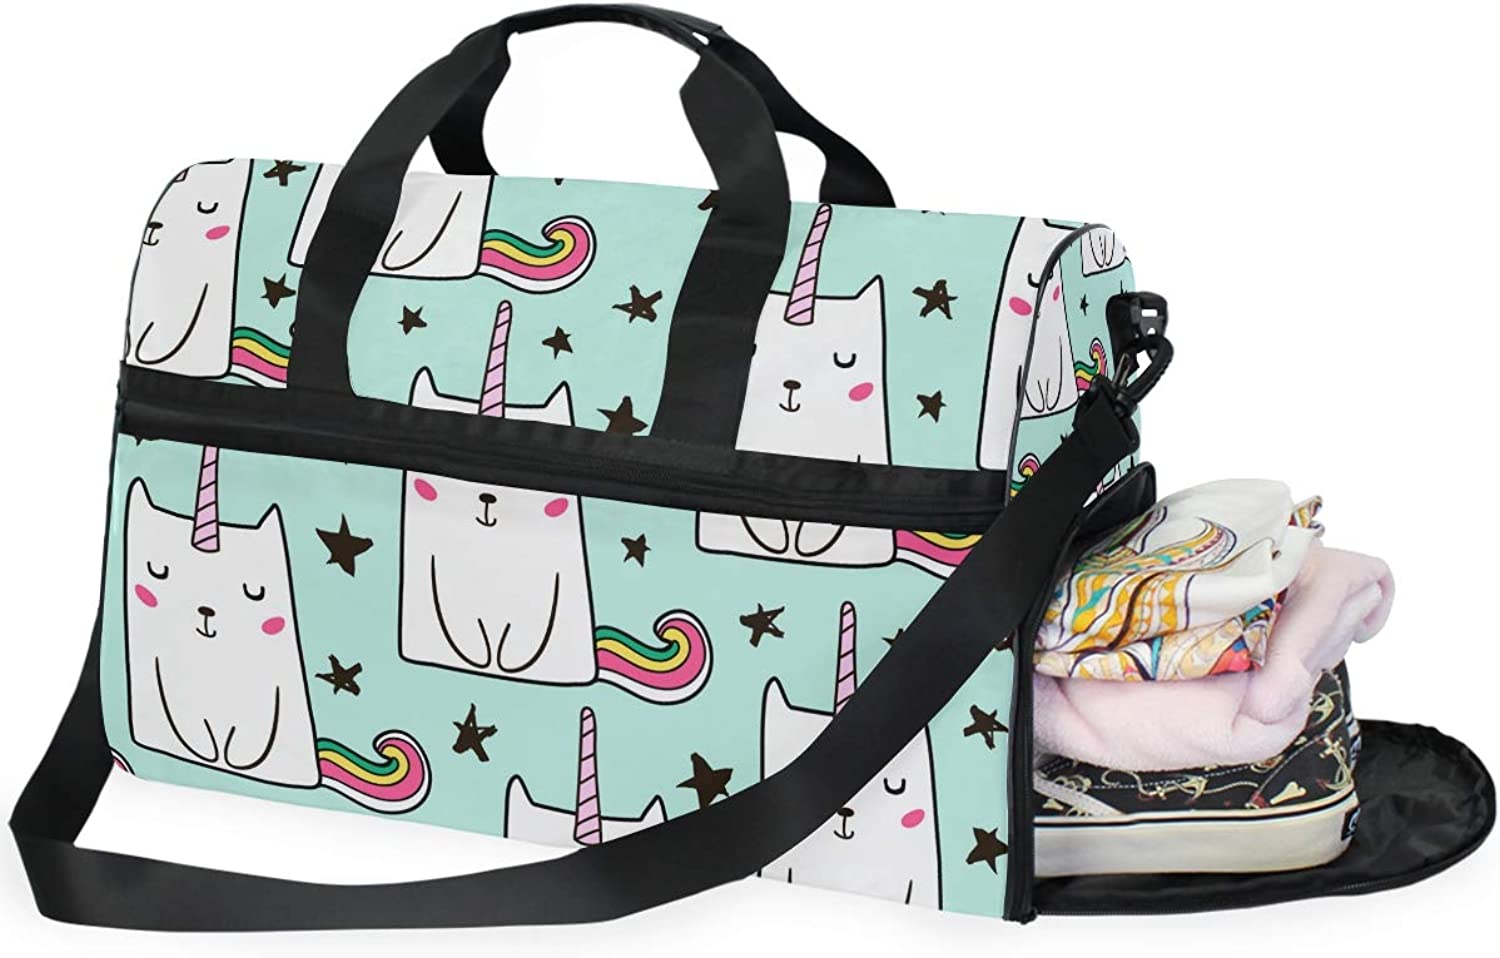 91bc6a806 Cute Cats Sports Gym Bag with Compartment Travel Duffel Bag for Men and  Women shoes Unicorn noxsol1768-Sporting goods